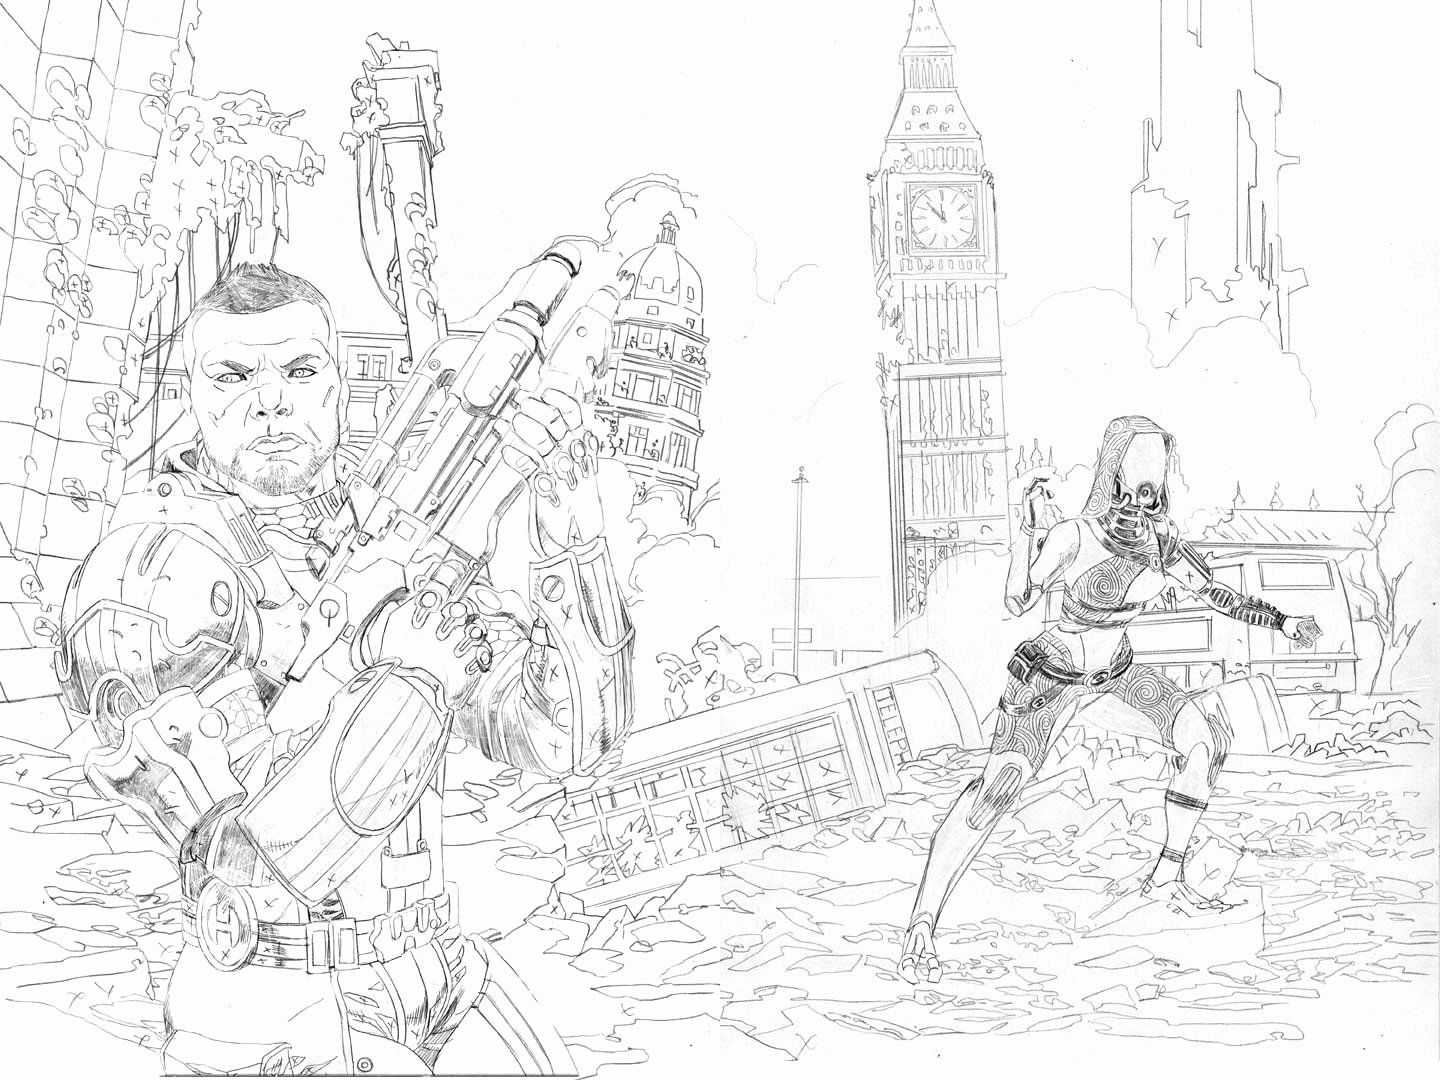 Mass Effect Coloring Book Luxury Mike Hawthorne Mass Effect Homeworlds 2 Cover Process King Coloring Book Owl Coloring Pages Power Rangers Coloring Pages